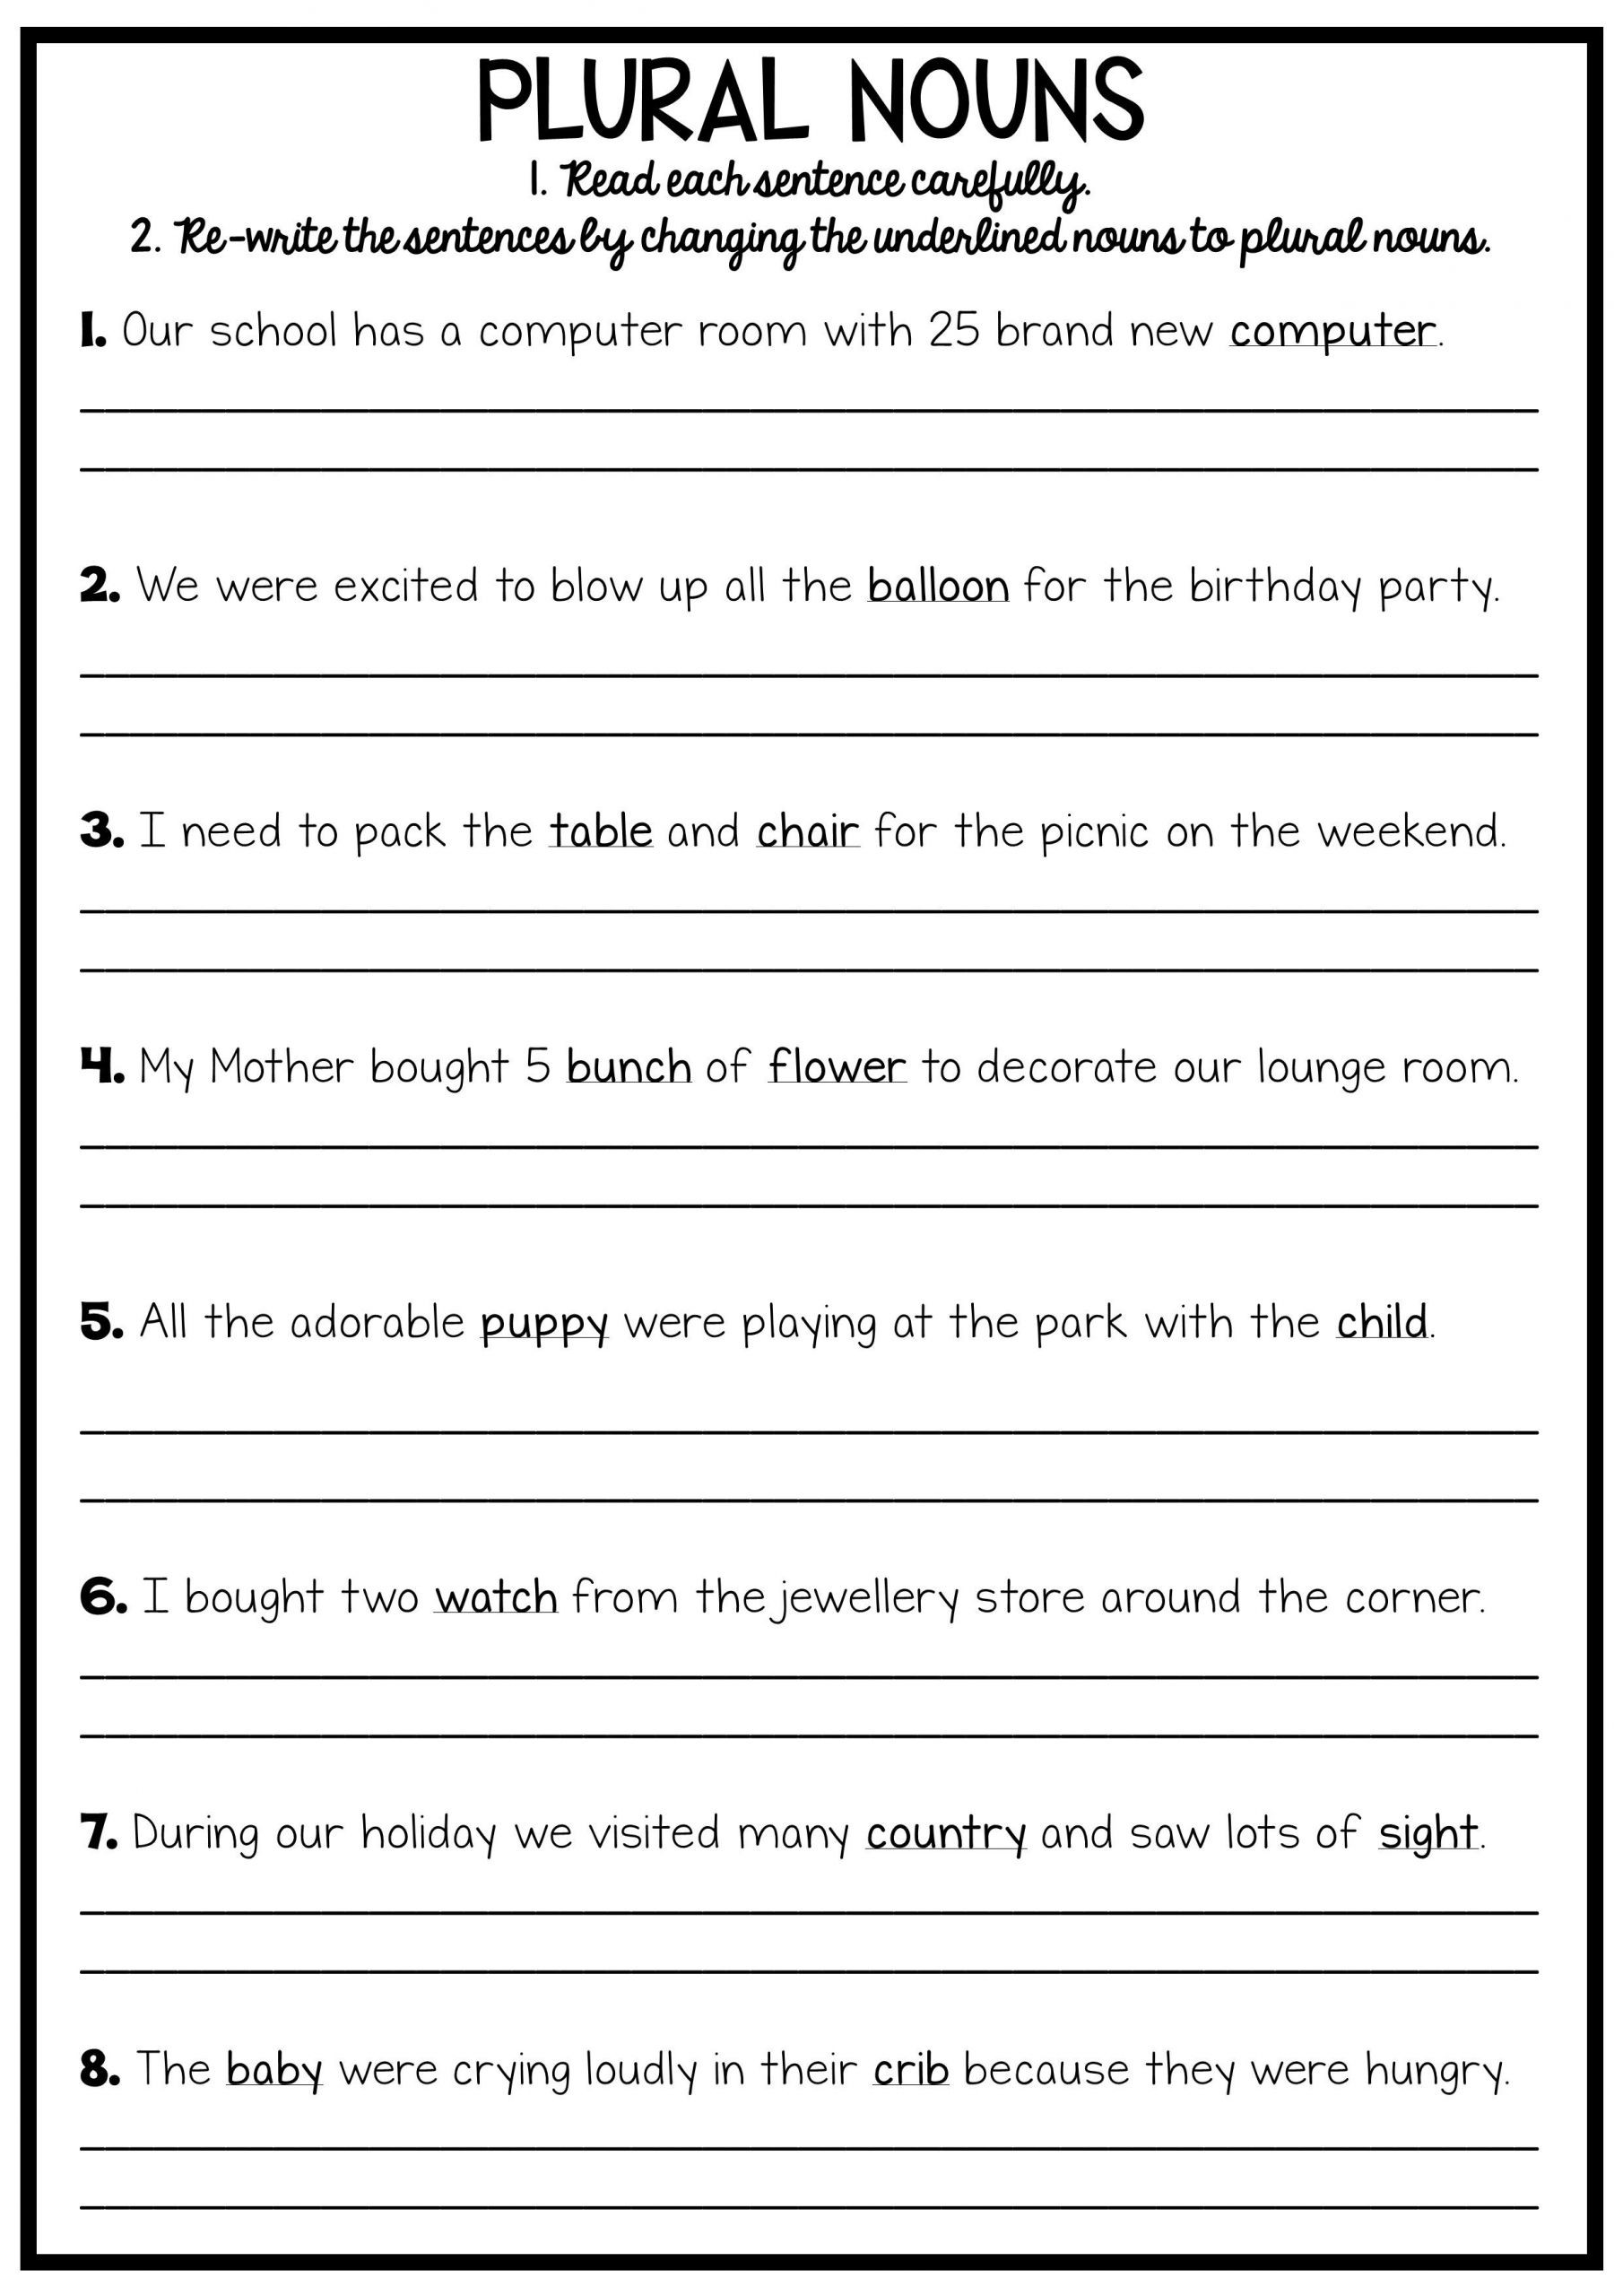 Grammar Worksheets for 3rd Grade Grammar Worksheets 8th Grade English Printable Reading